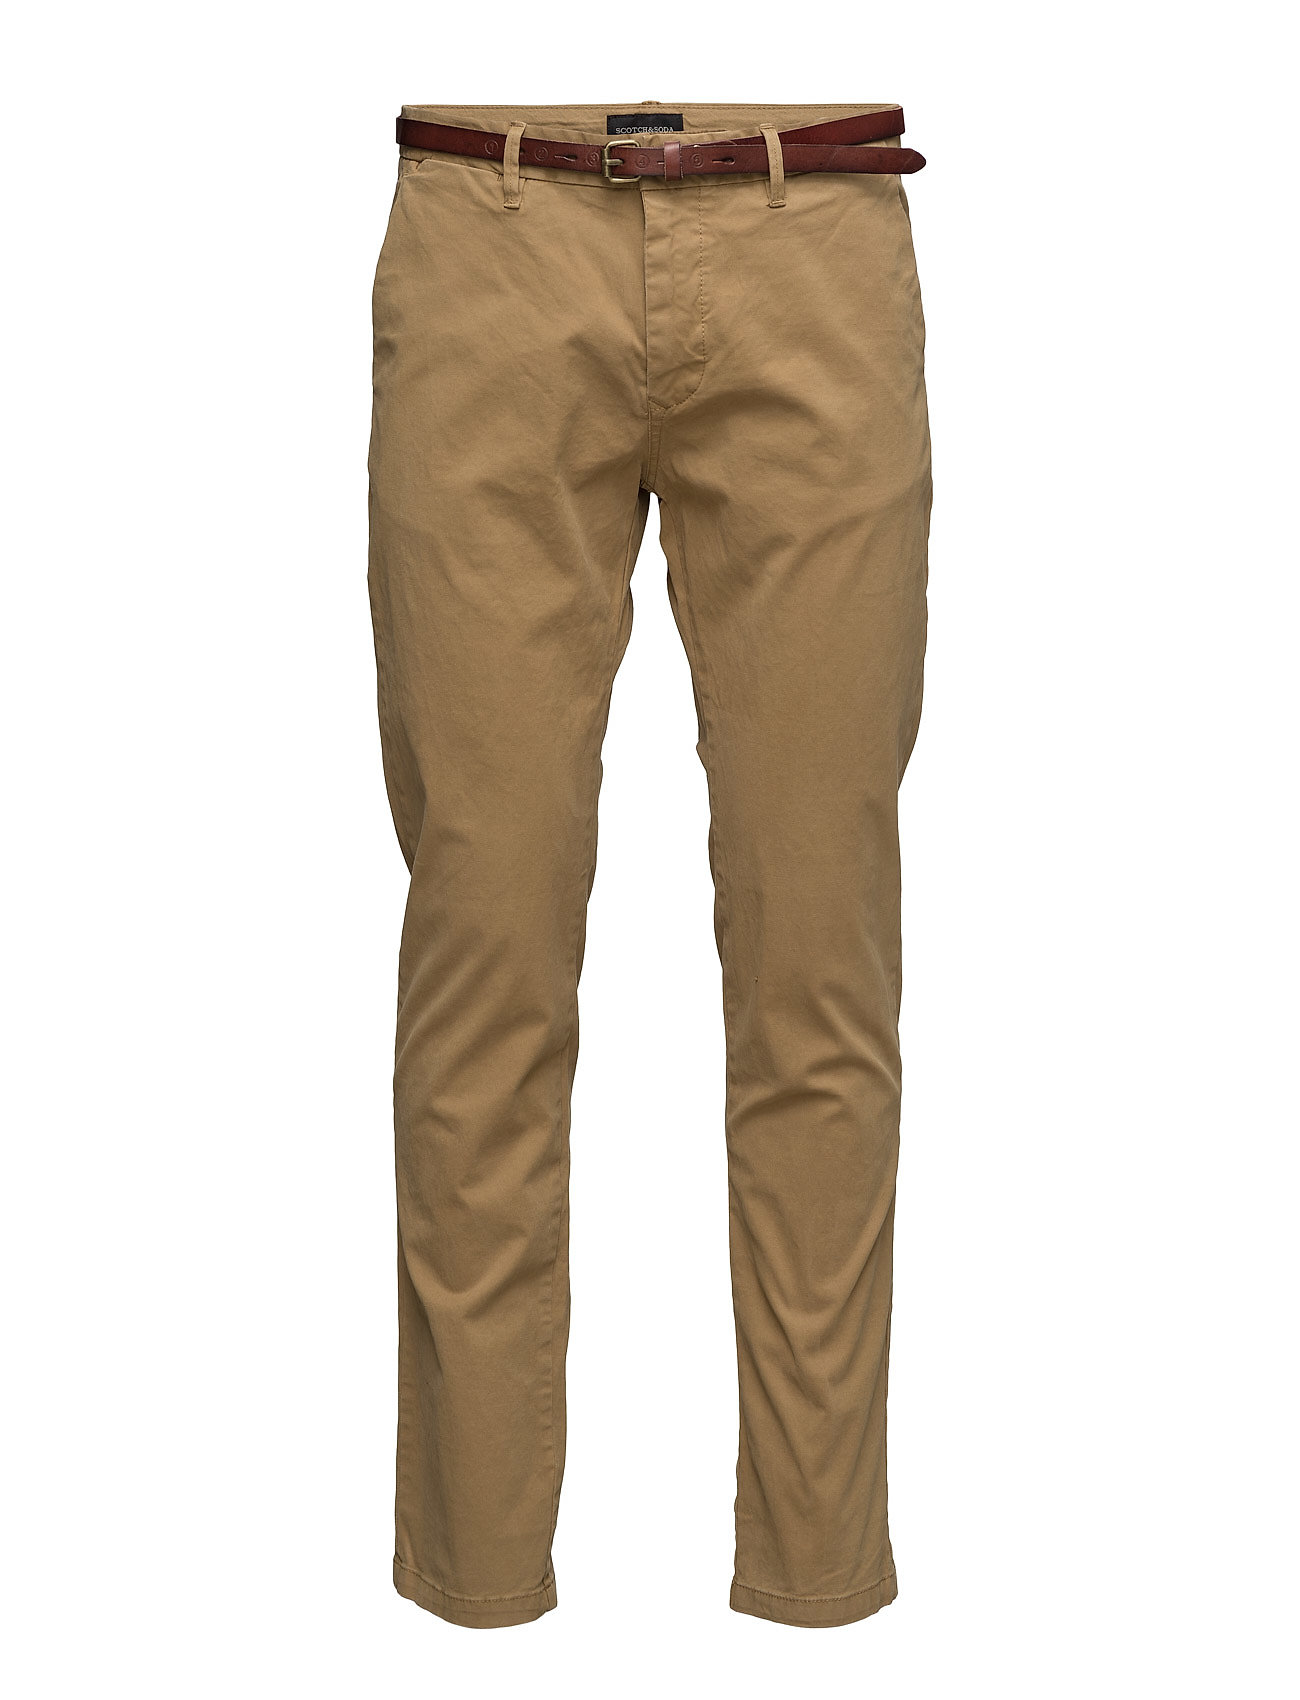 SCOTCH & SODA Slim Fit Cotton/Elastan Garment Dyed Chino Pant Chinos Hosen Braun SCOTCH & SODA